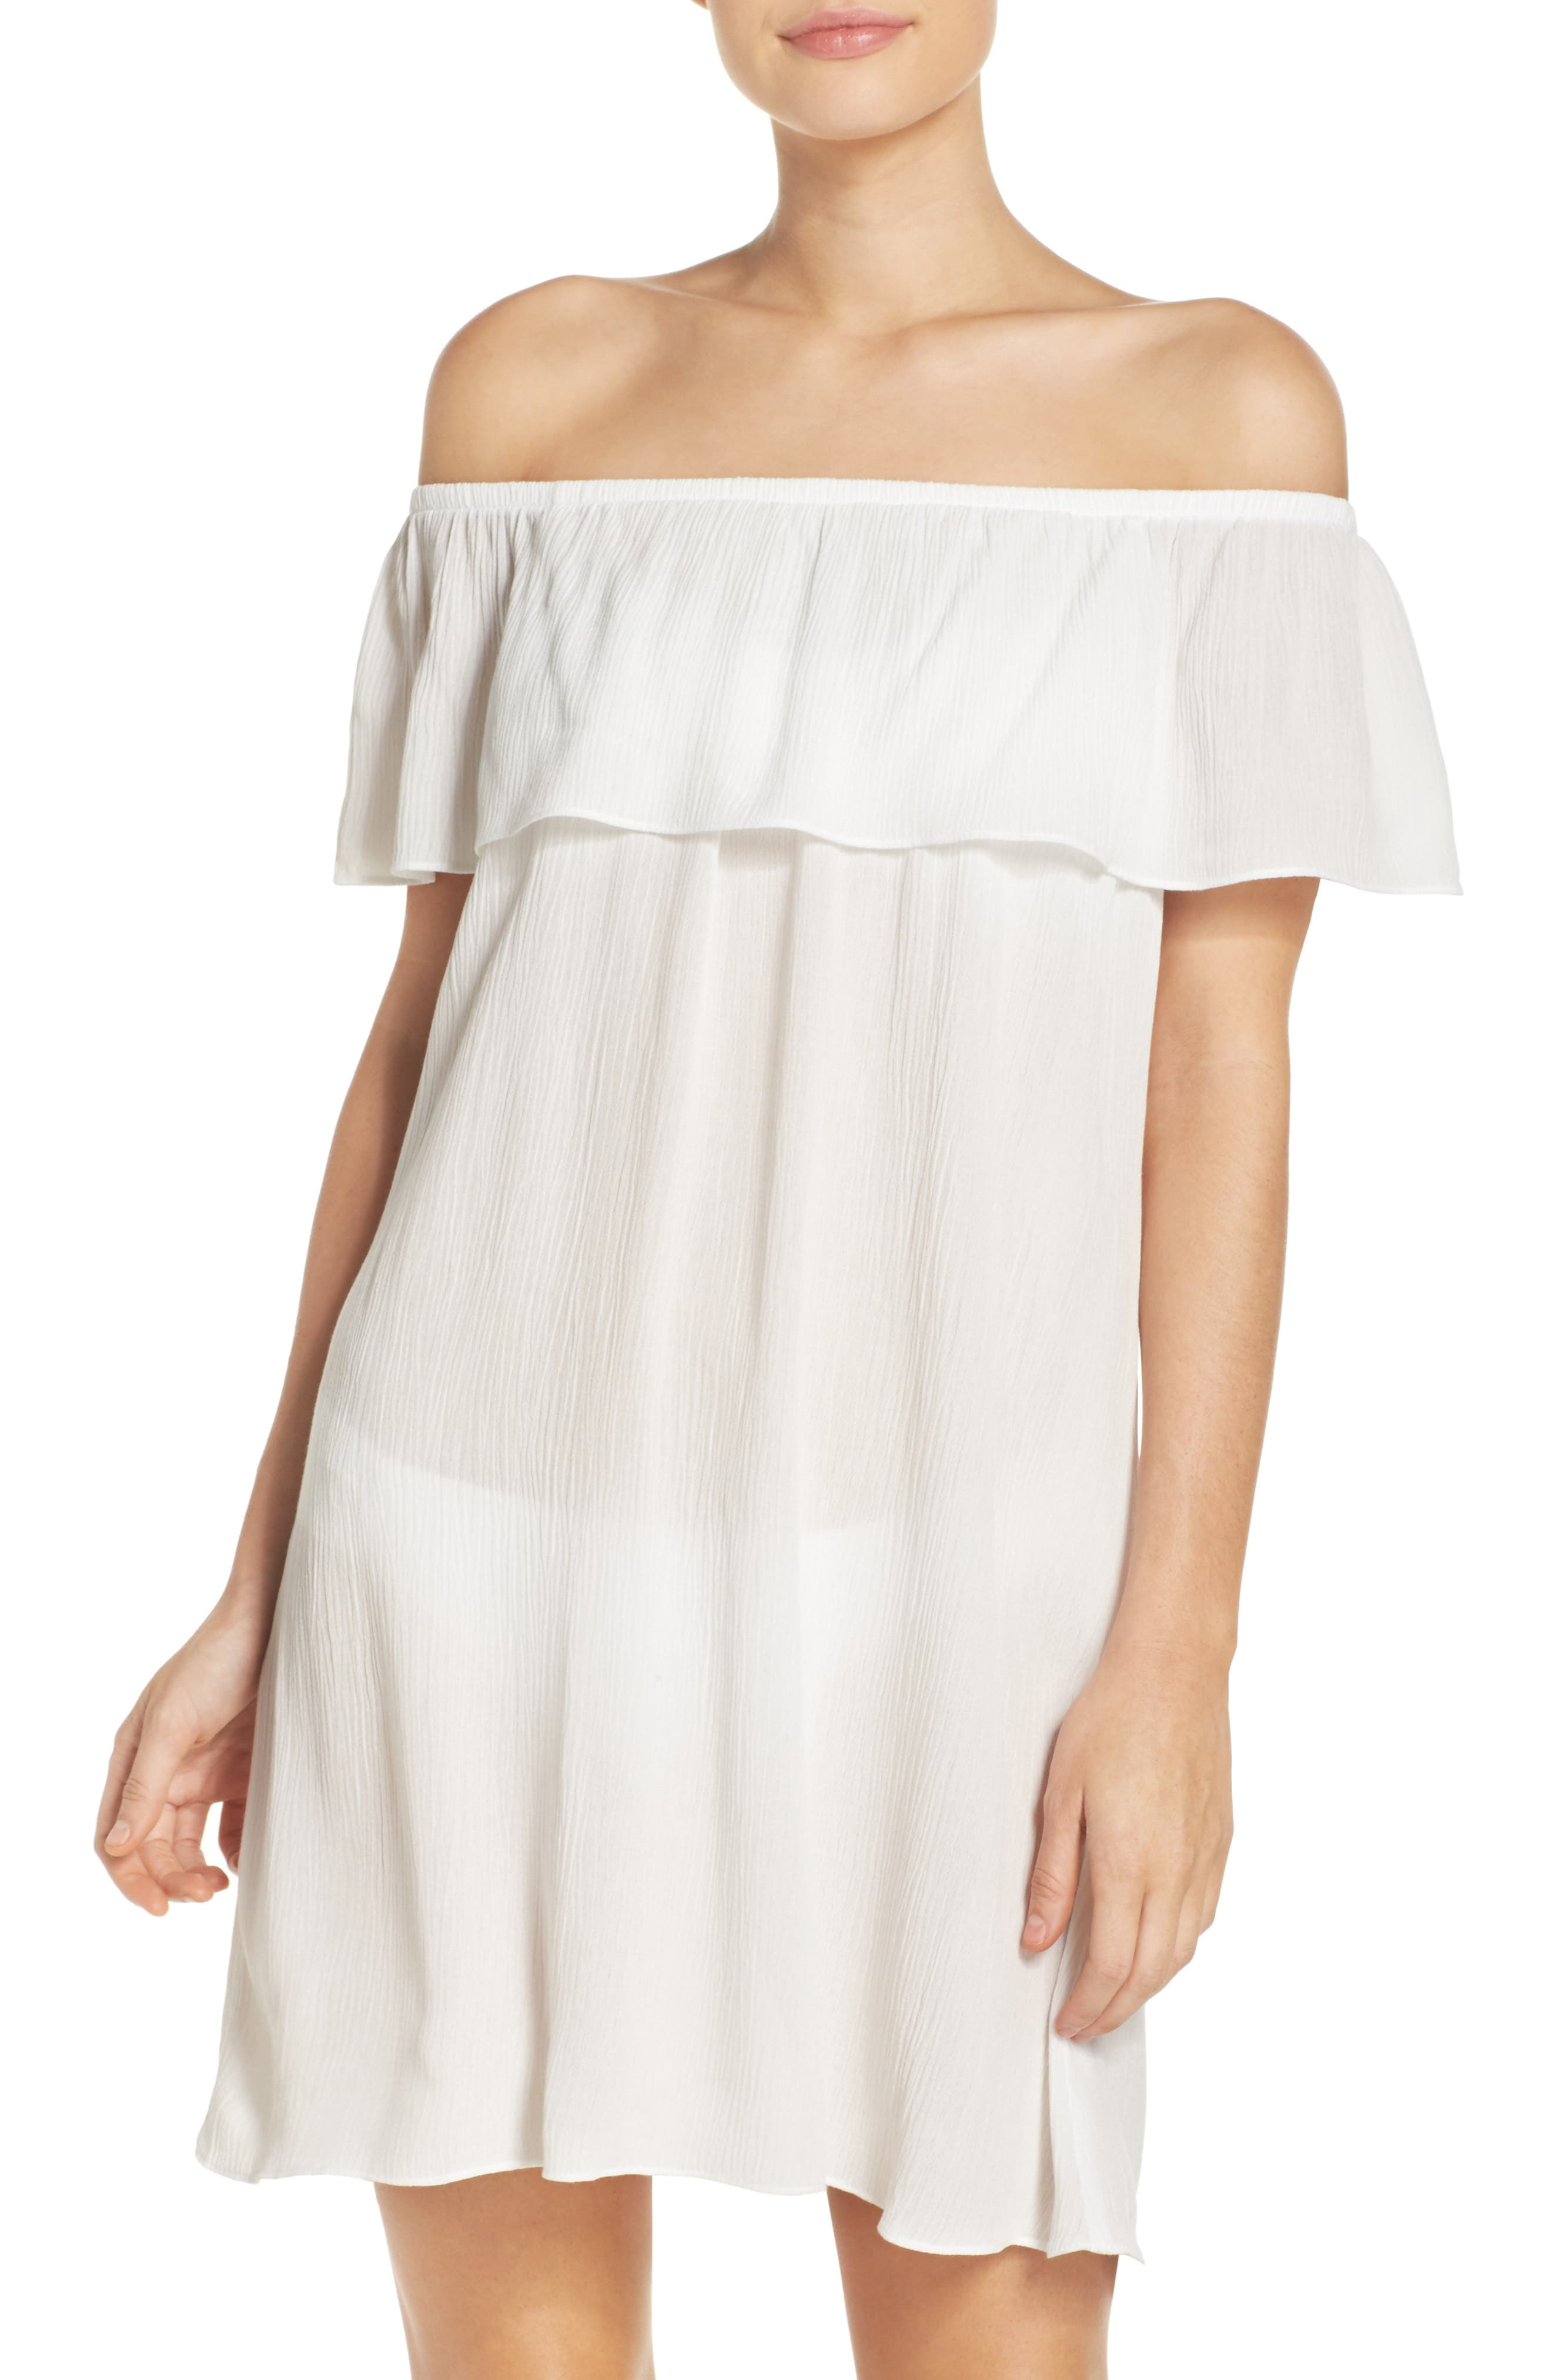 Southern Belle Off the Shoulder Cover-Up Dress,                             Main thumbnail 1, color,                             White